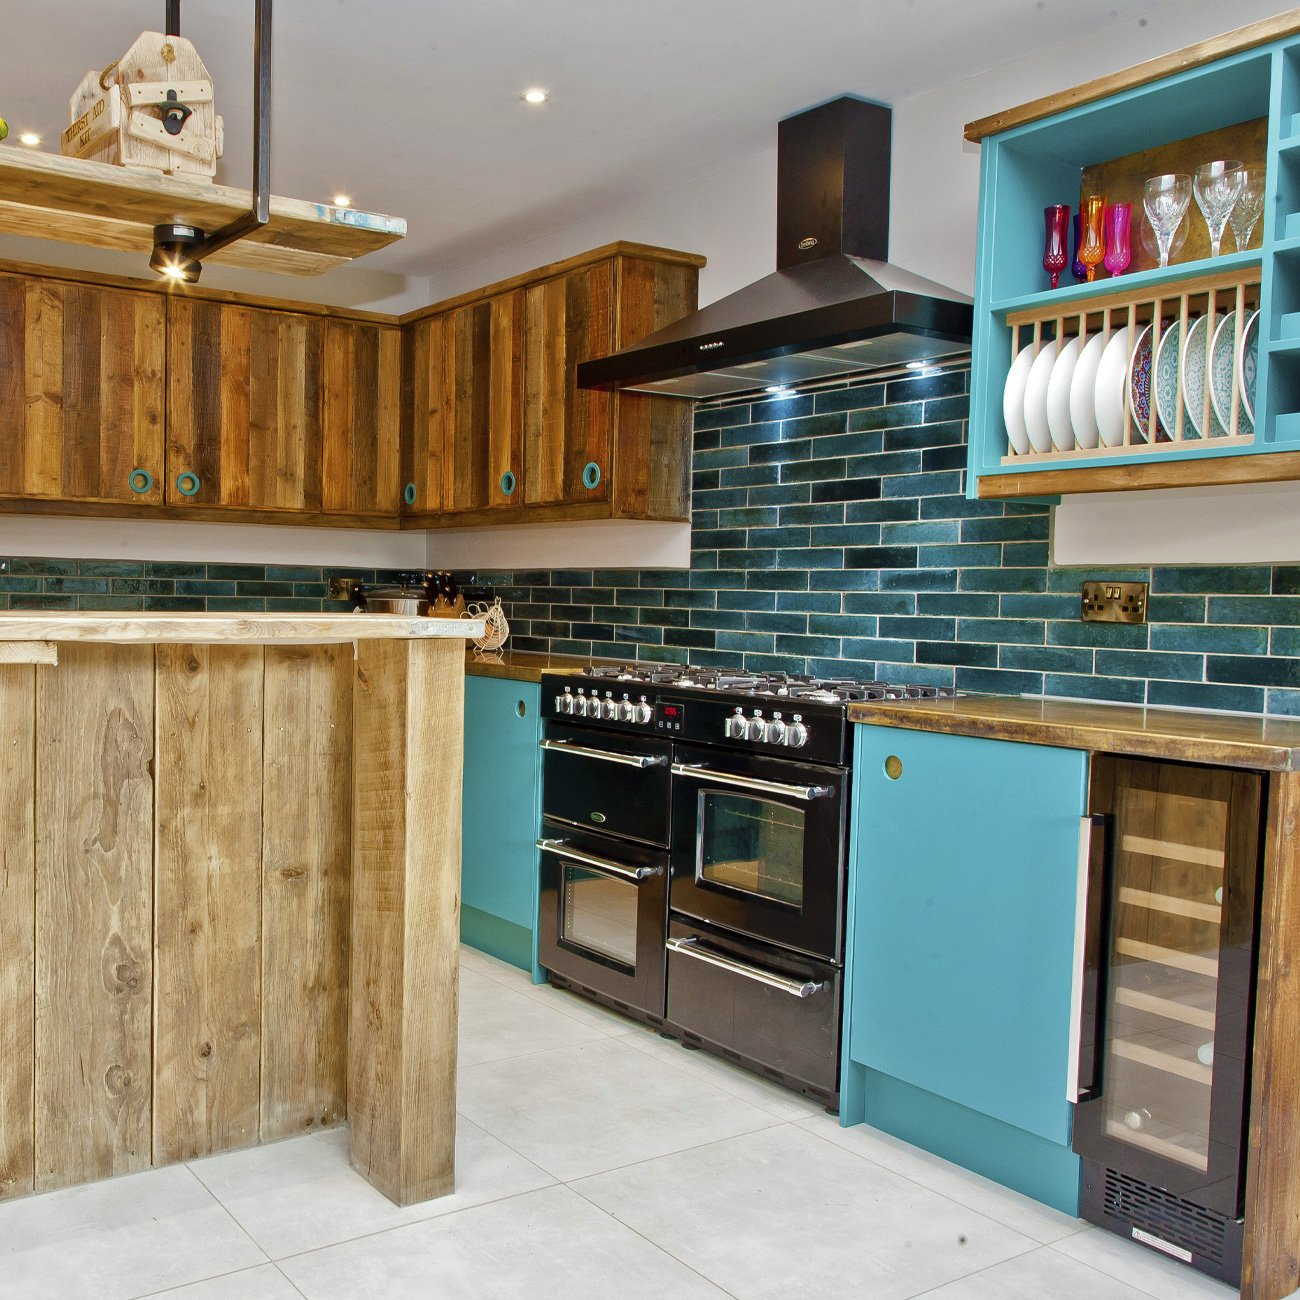 Interior of bespoke kitchen design and build